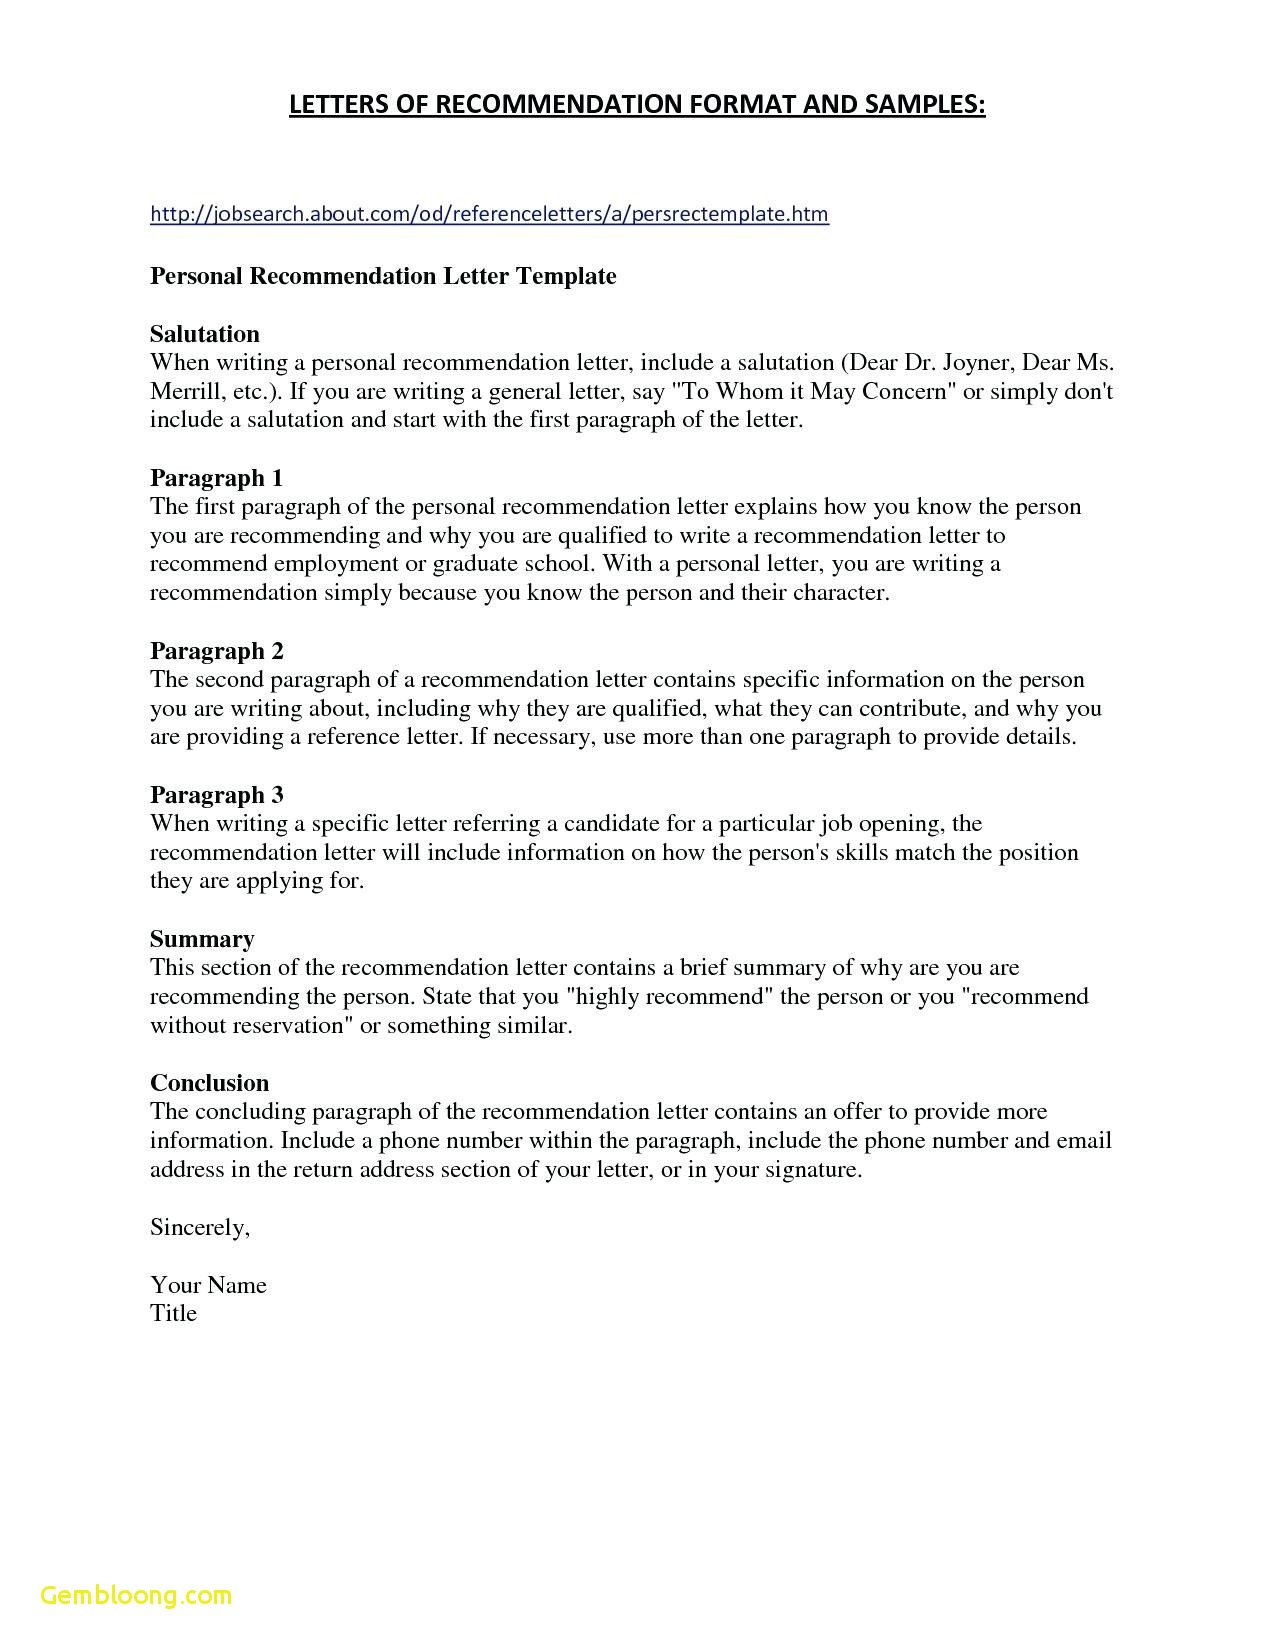 Reference Letter format Template - Reference Page Template for Resume Best References for Resume